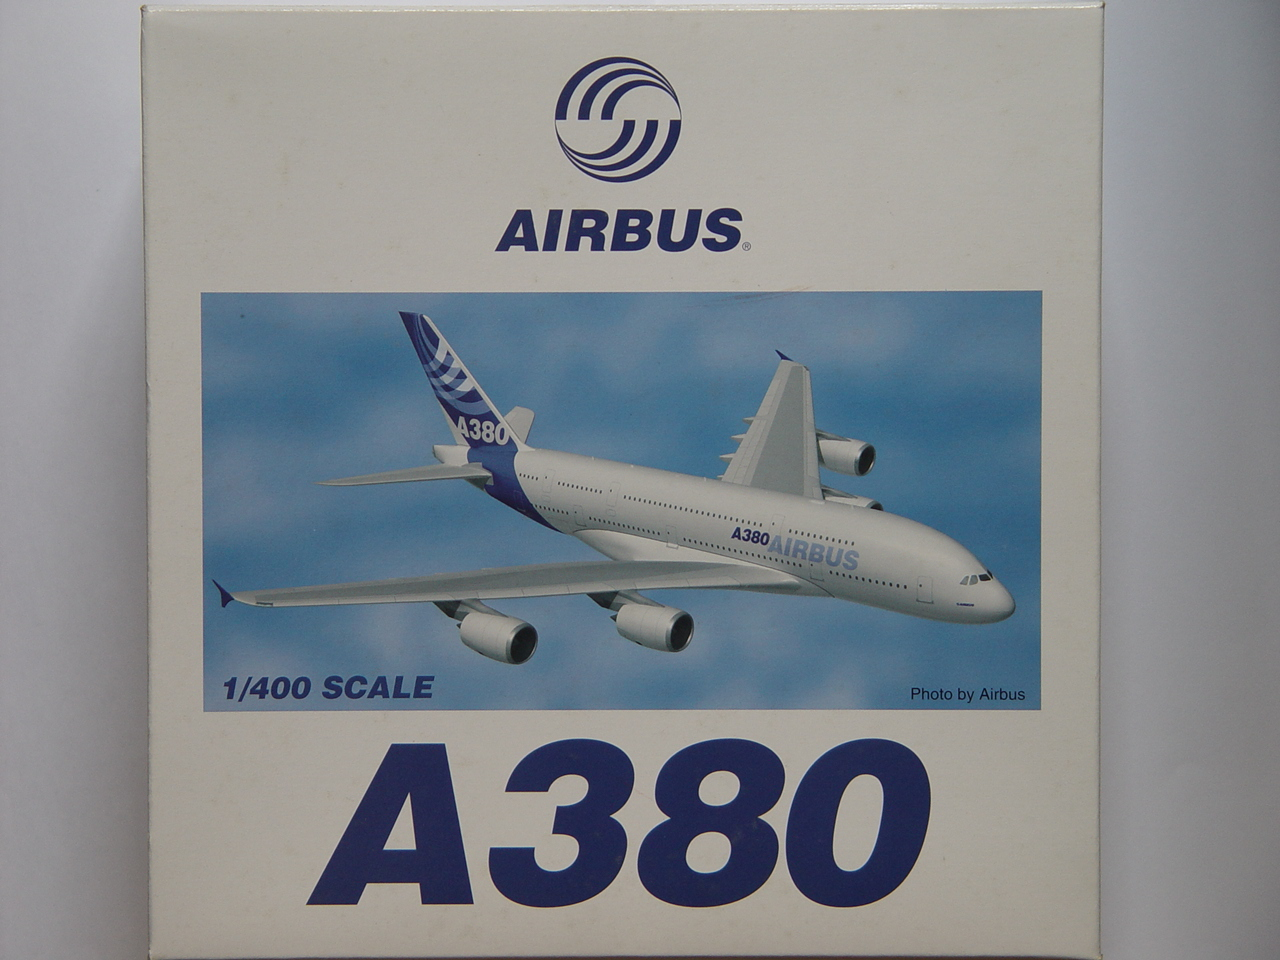 FOR SALE: Airbus A380-800 Aircraft Model